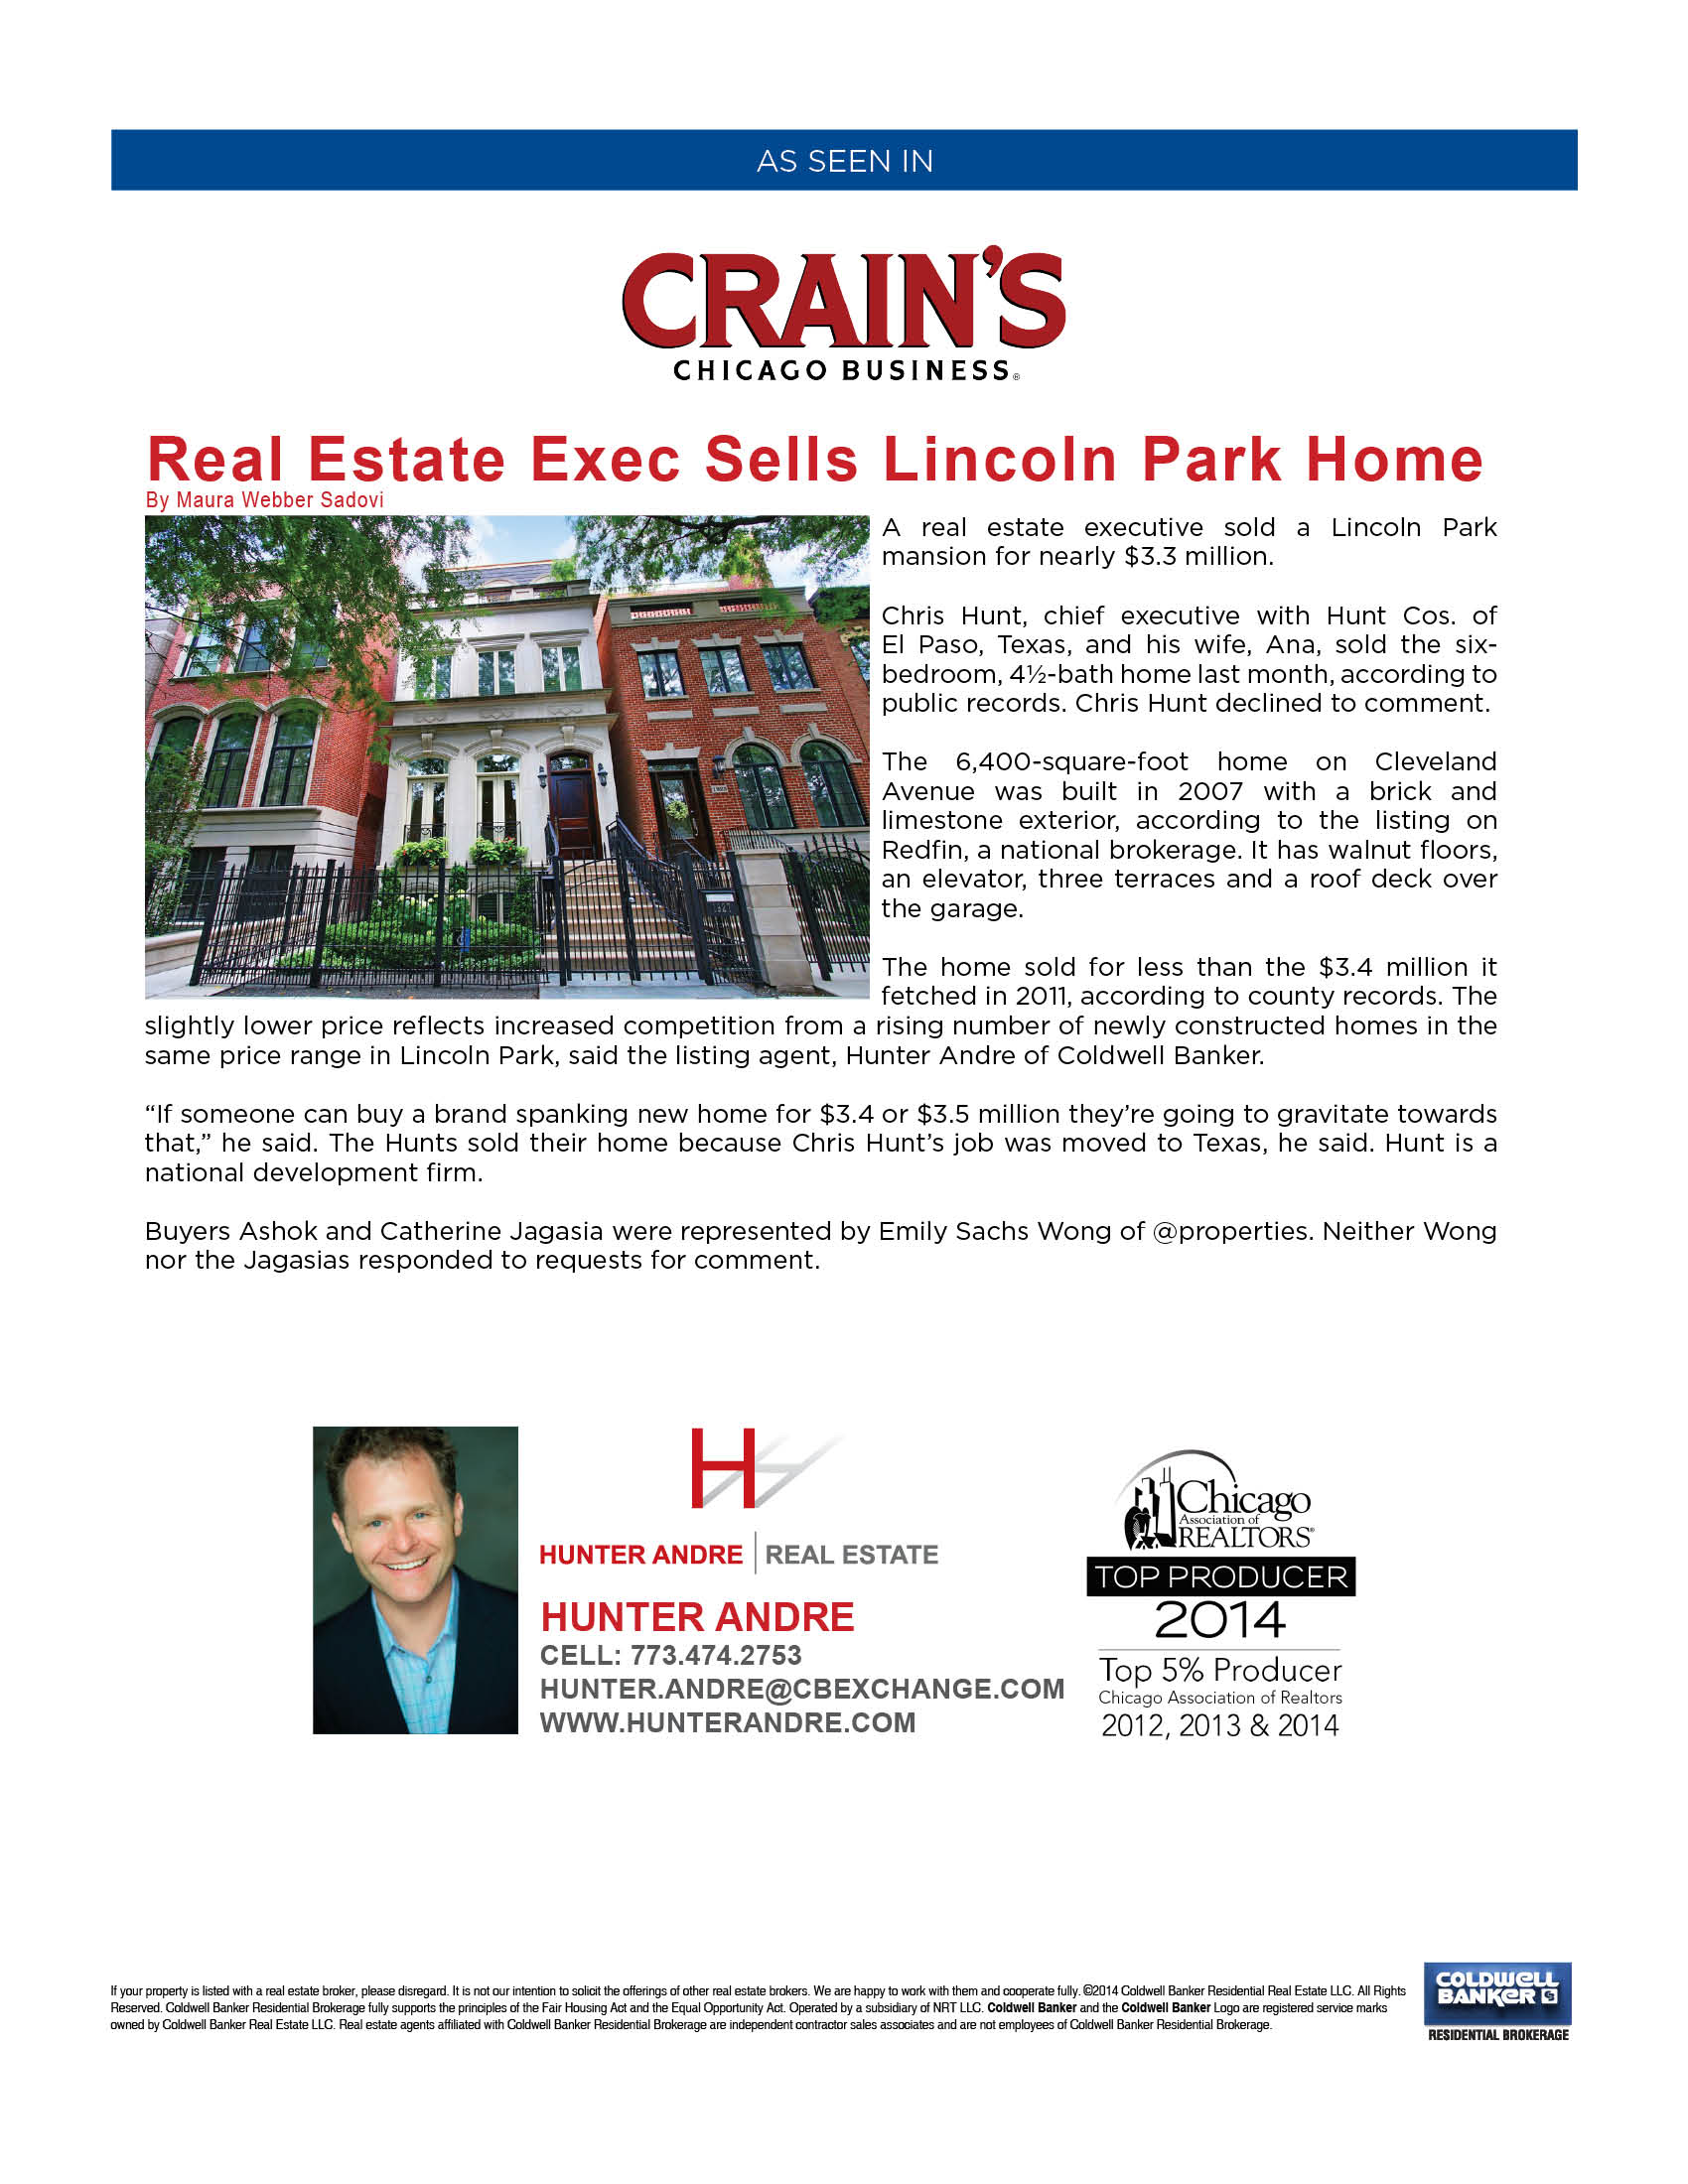 Crain's Chicago Business - Lincoln Park Home